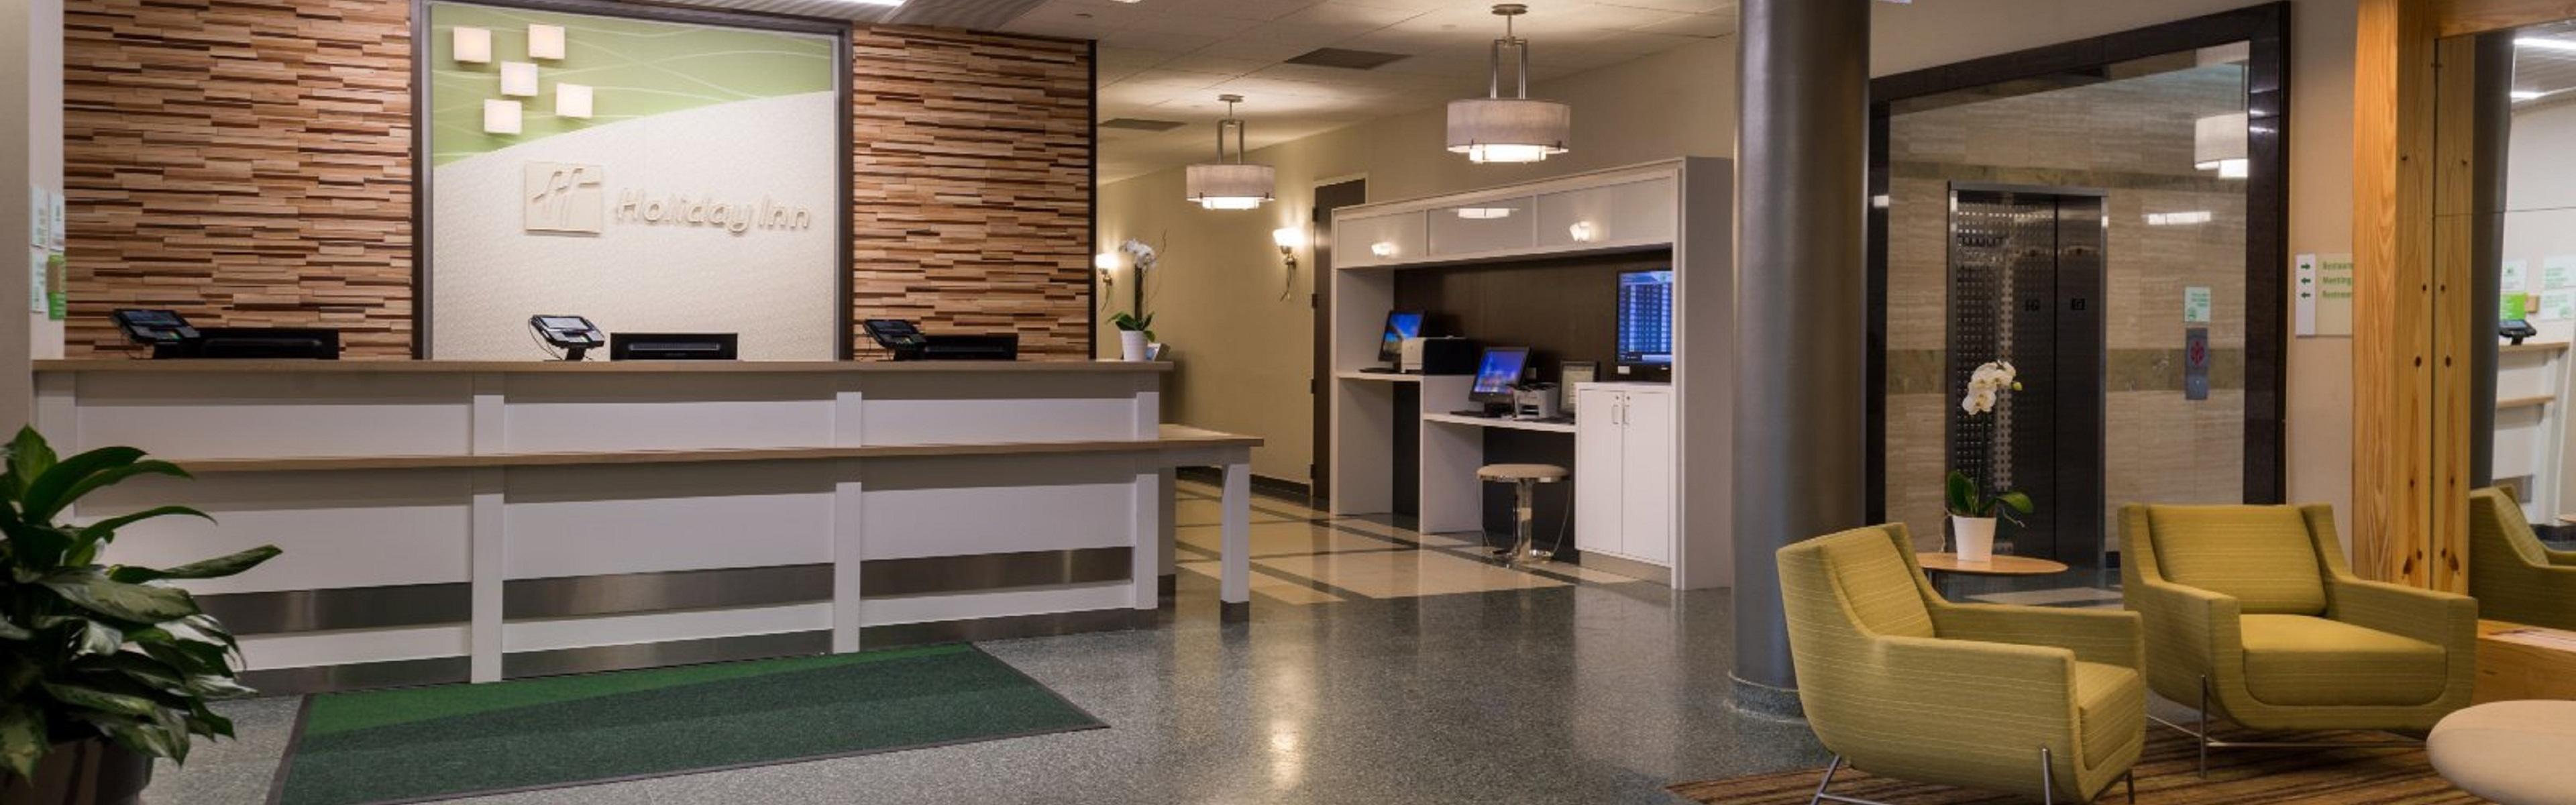 Best Hotel Lobby With Hotels Near Rosemont Convention Center